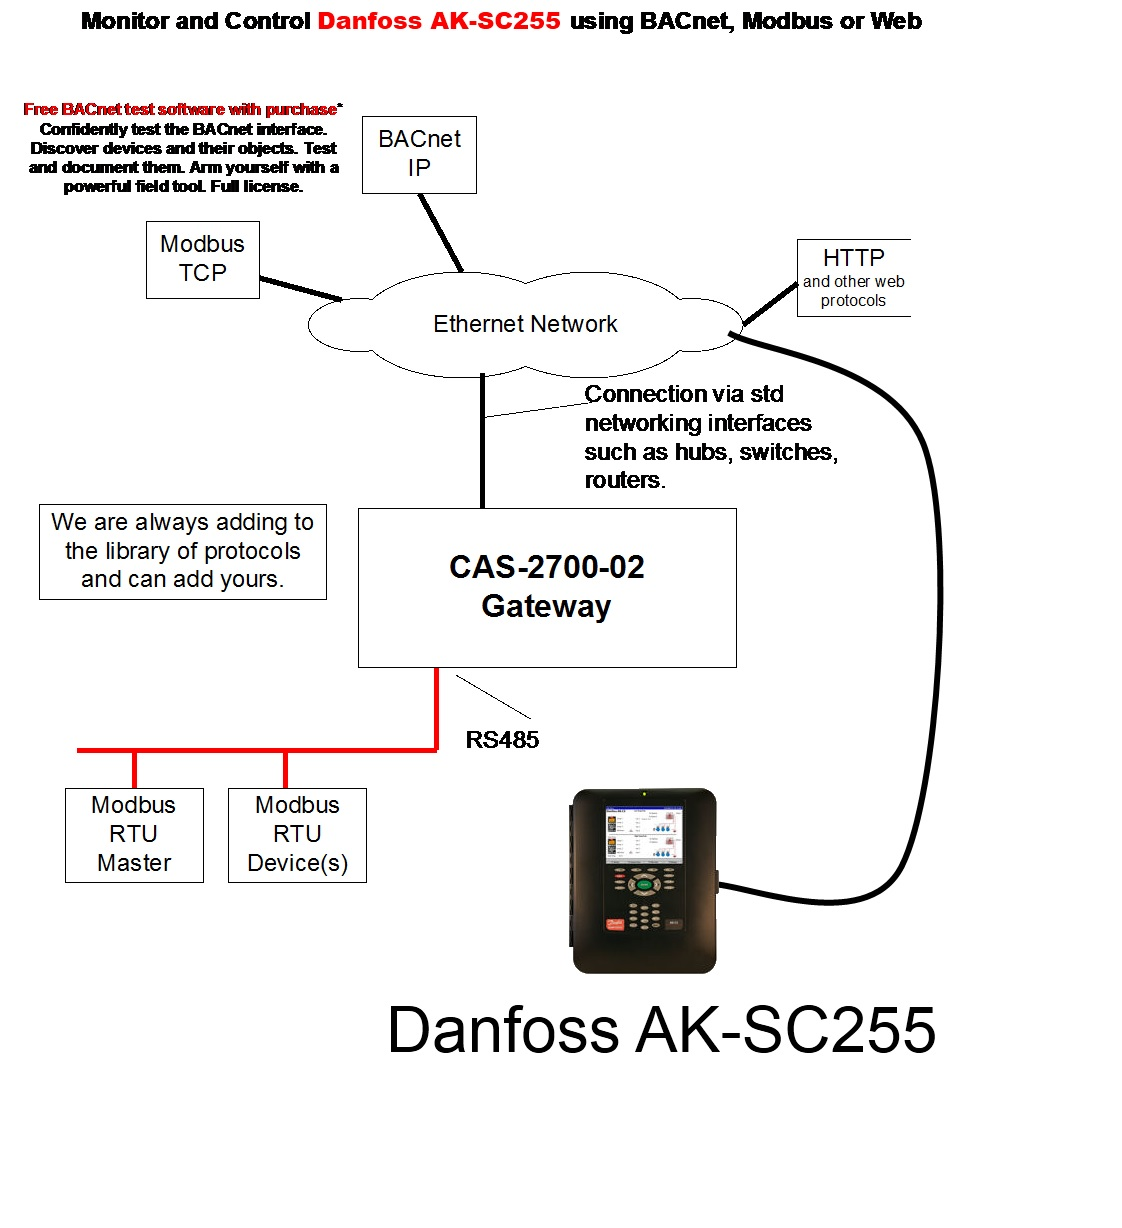 /2017/mar/10-12-58-43_CAS2700-15 Danfoss Gateway Connection Diagram.jpg